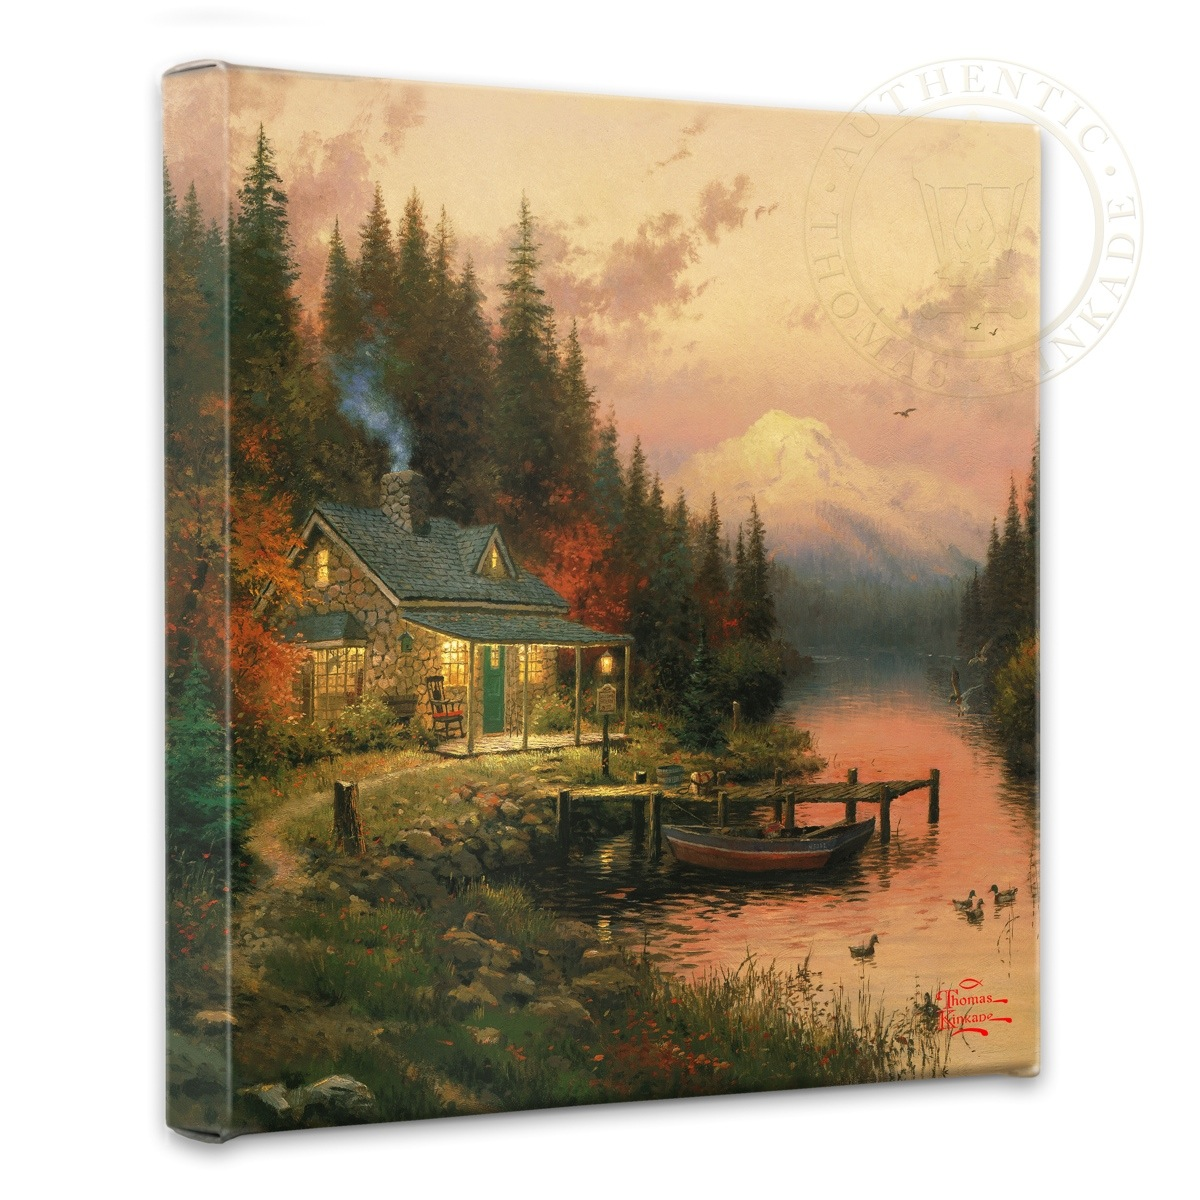 "Thomas Kinkade The End of a Perfect Day - 14"" x 14"" Gallery Wrapped Canvas"